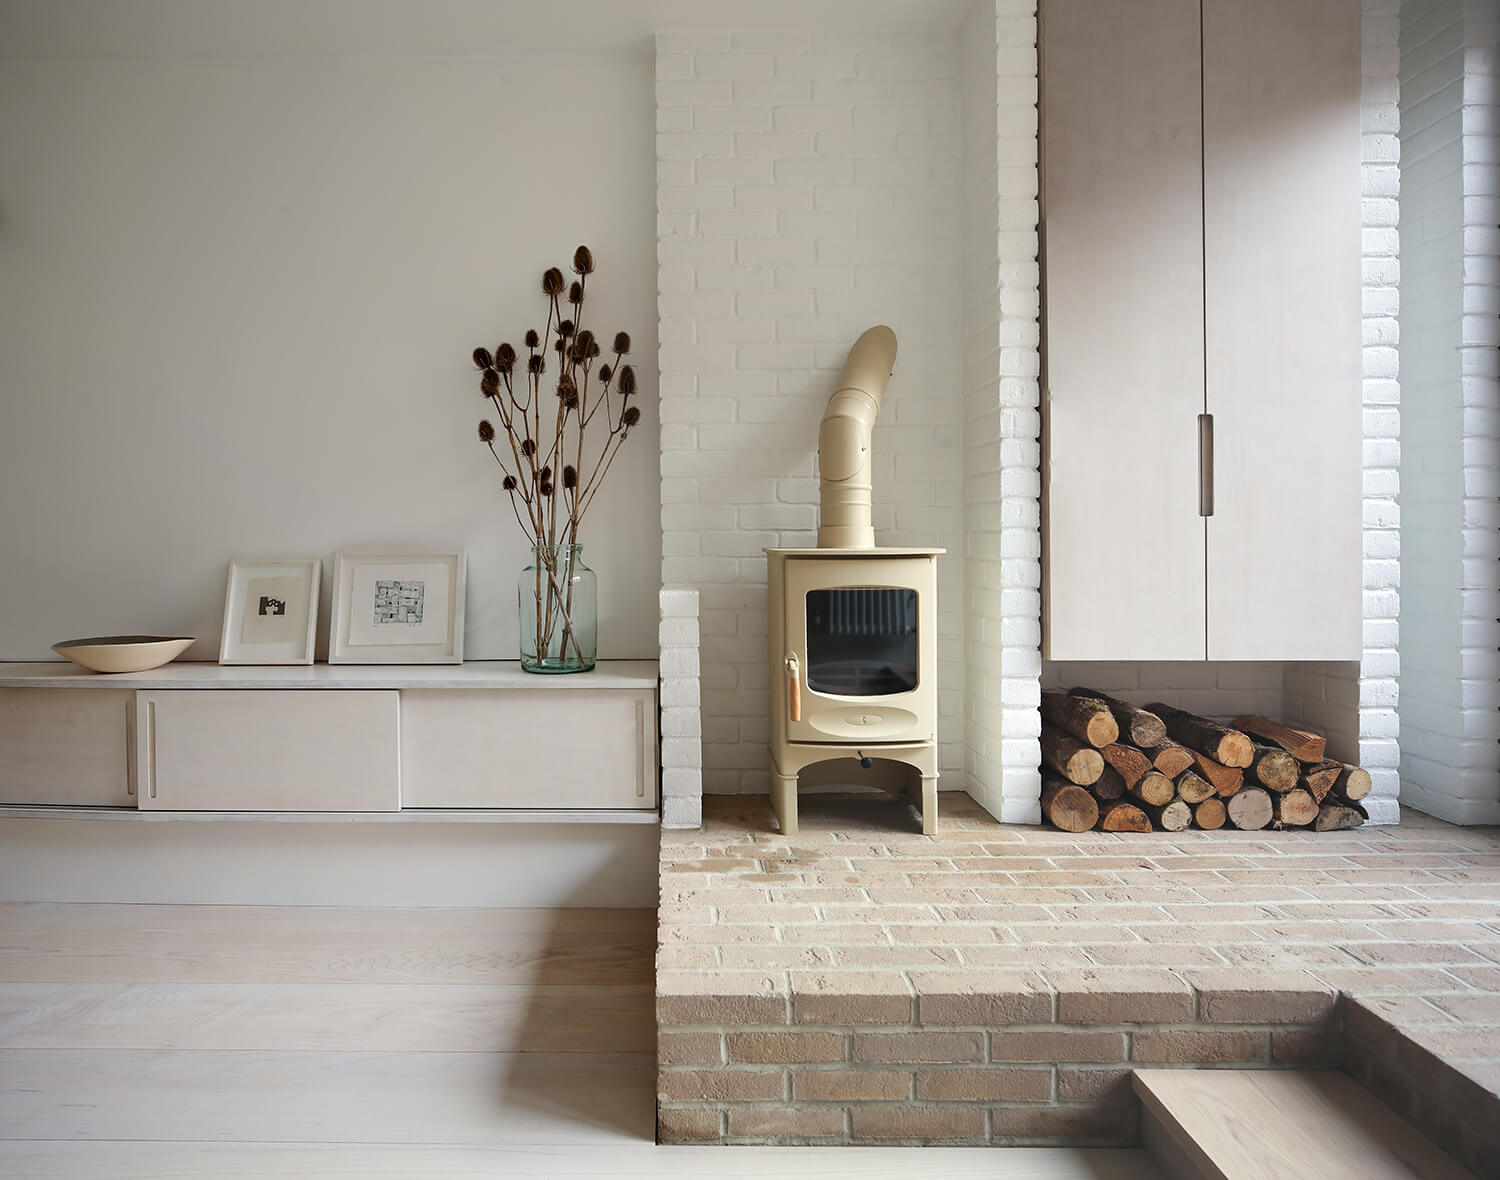 1-Bruton-Narrow-House-Somerset-Prewett-Bizley-Architects-Stove-Ash.jpg